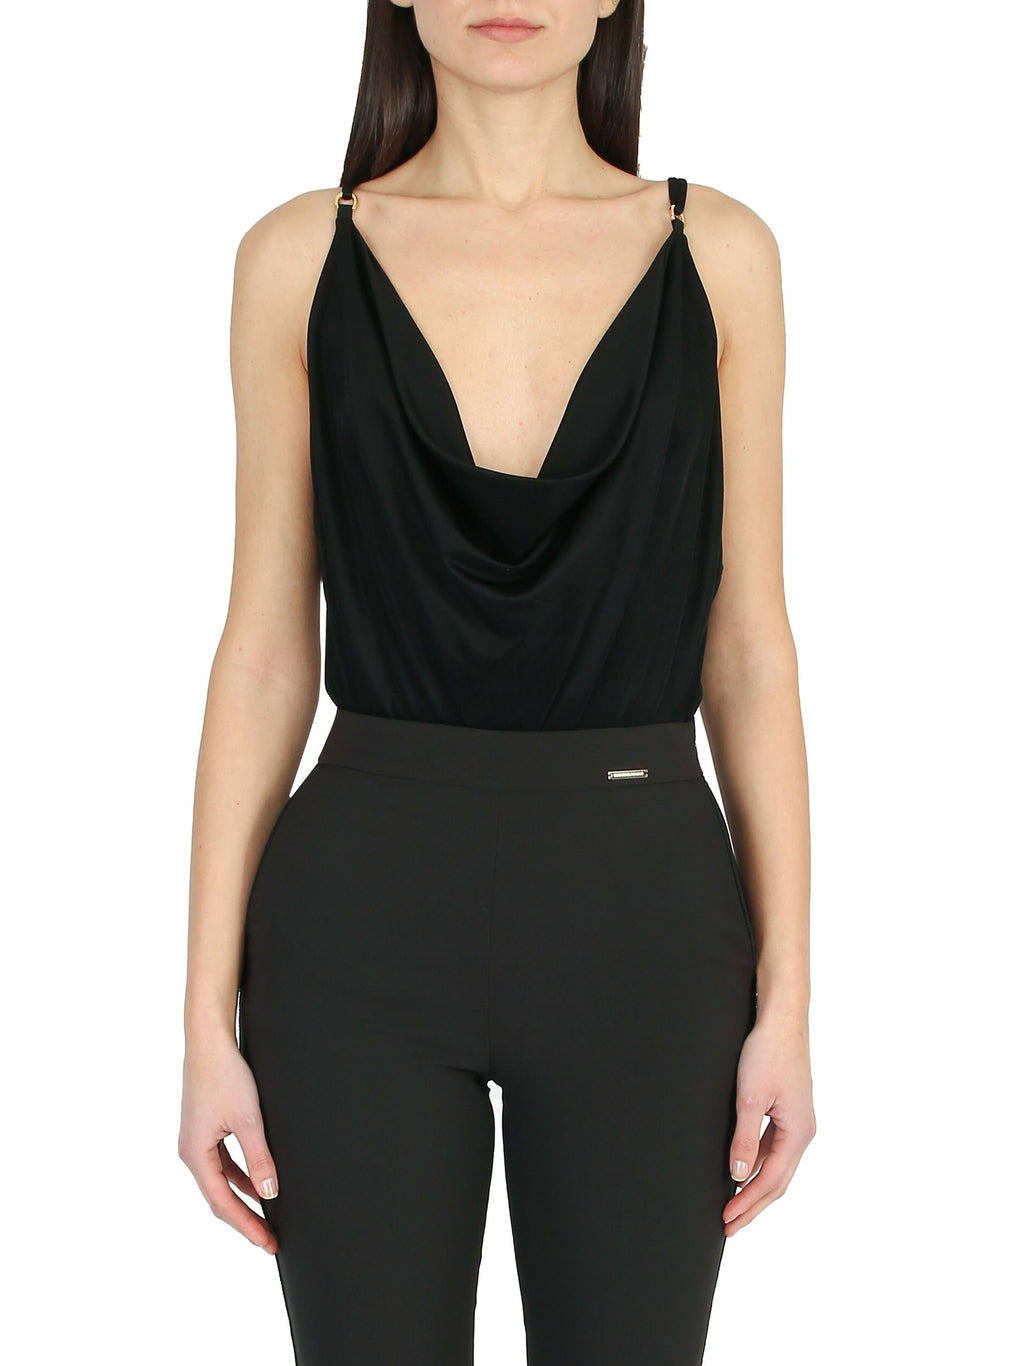 Draped v-neck body